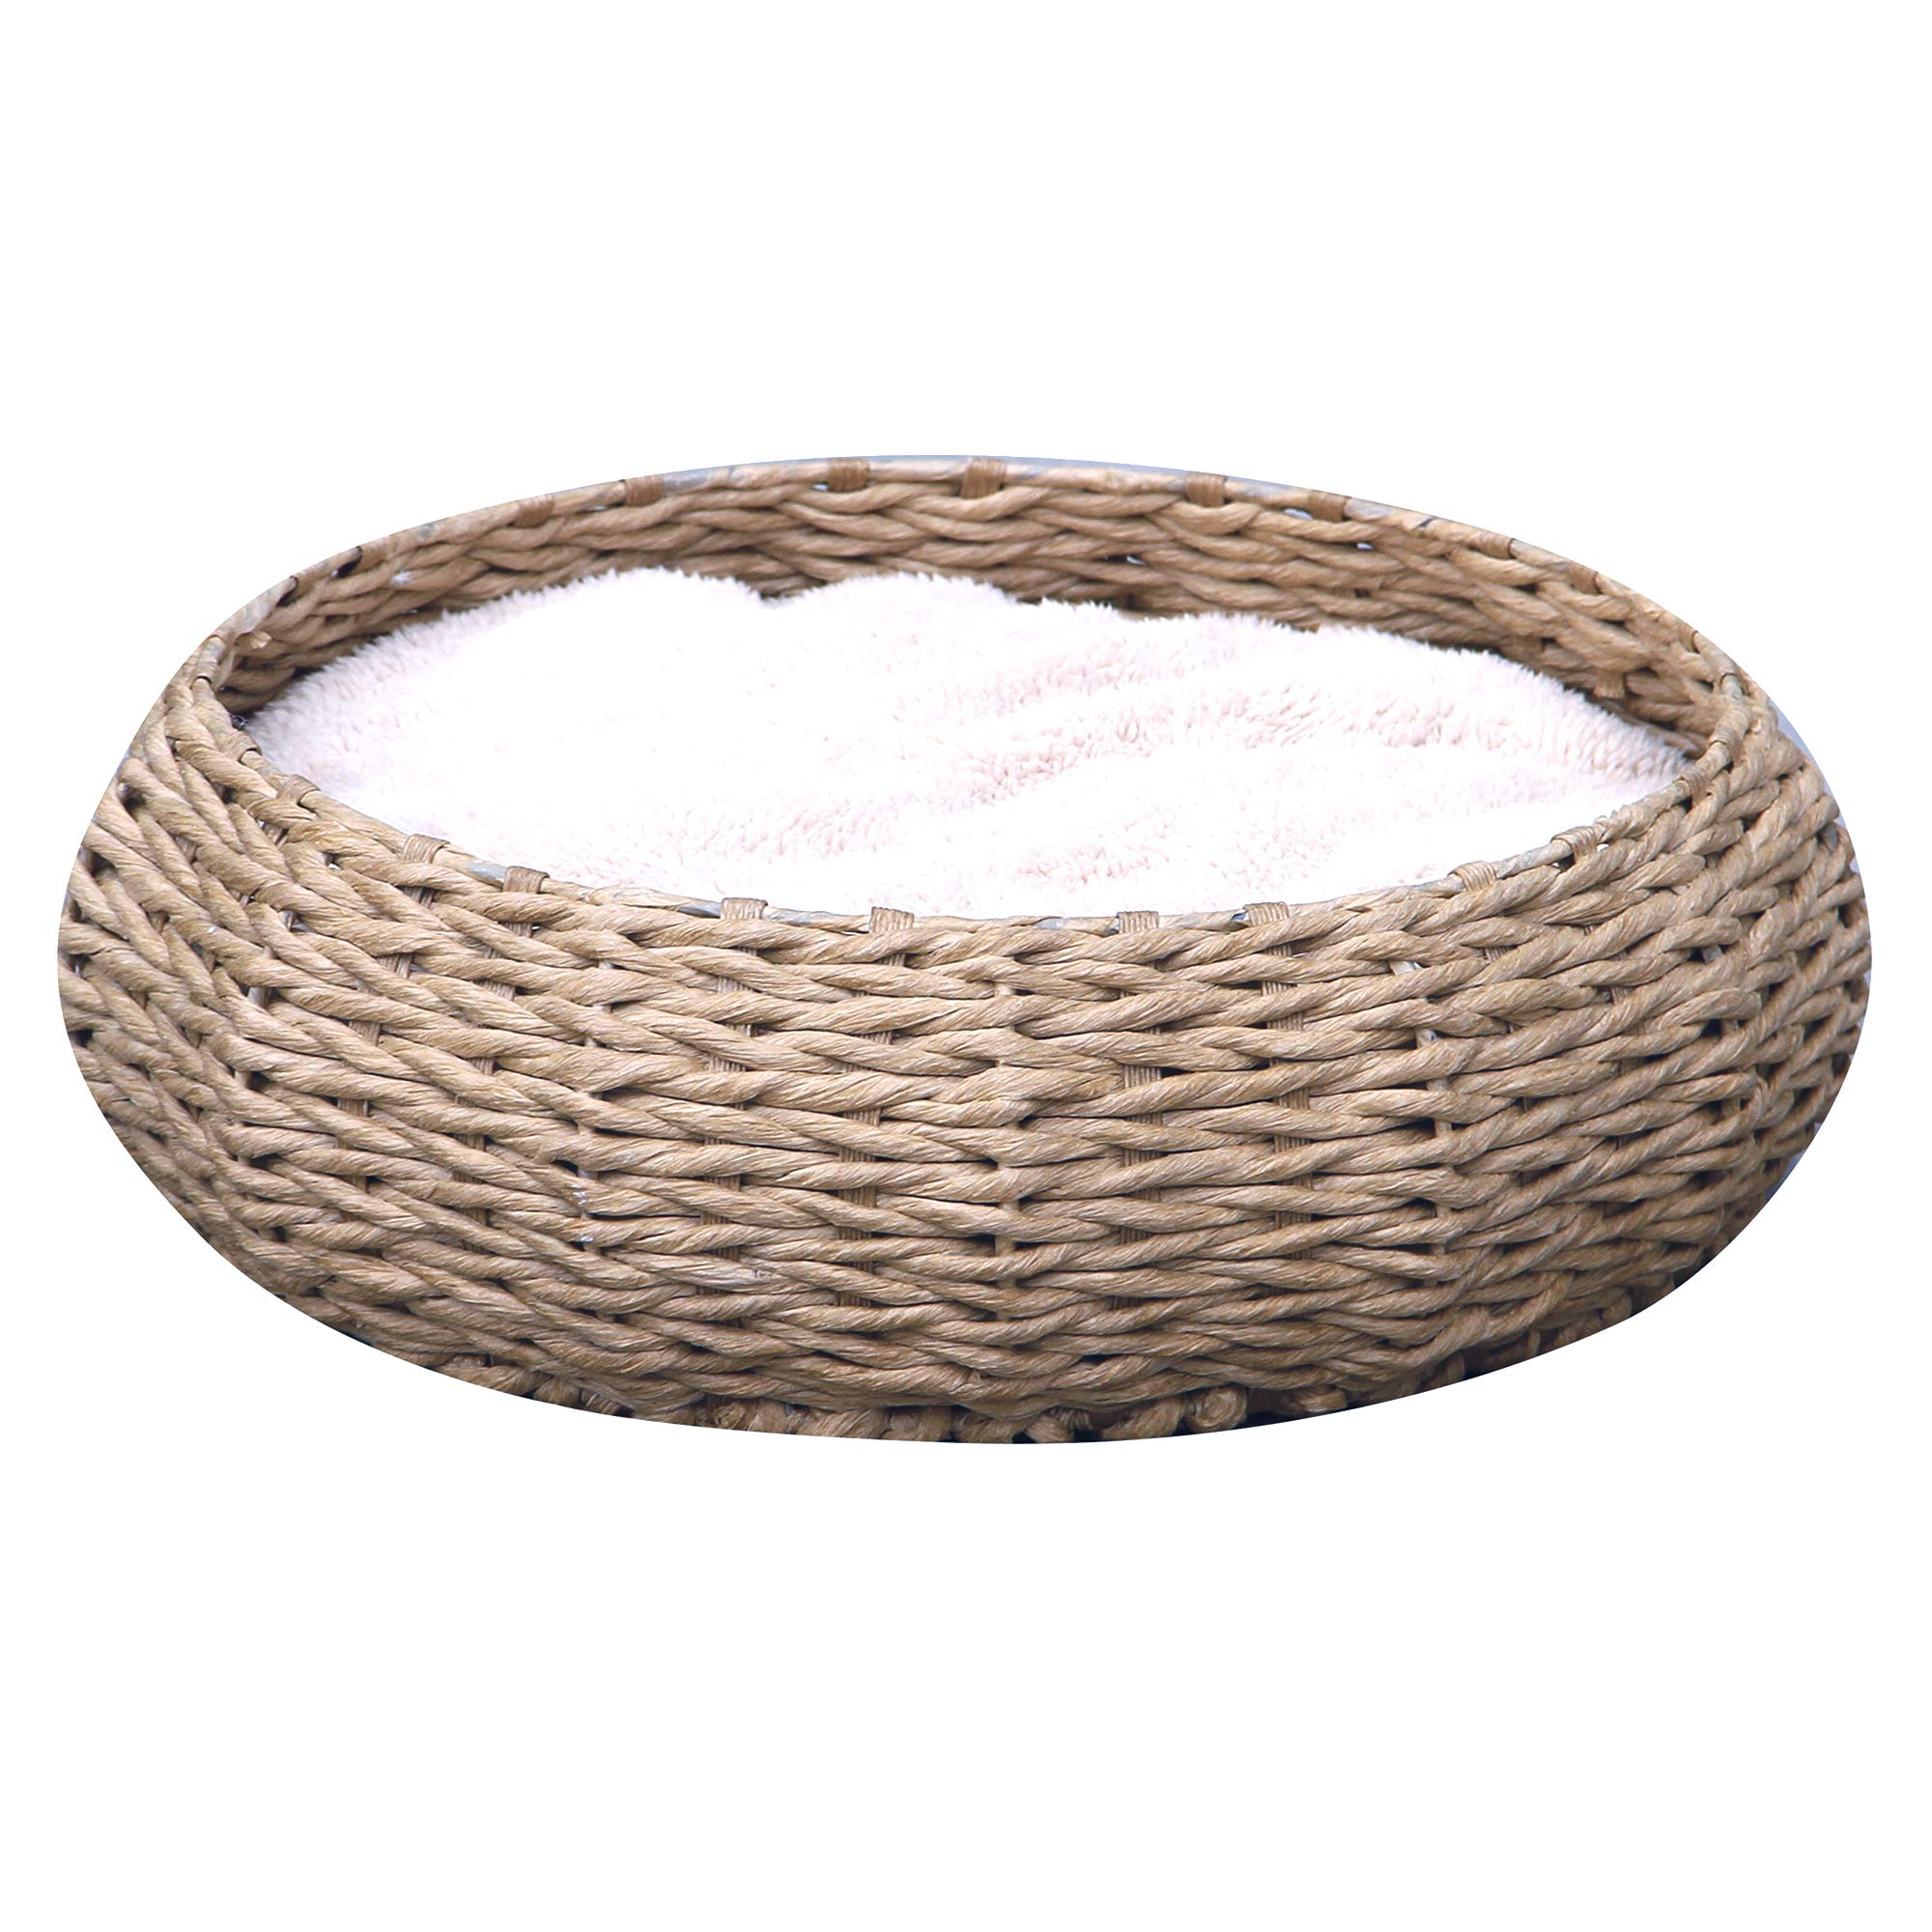 Petpals Hand Made Paper Rope Round Bed for Cat/Dog/Pet Sleep with Pillow, Natural by PetPals